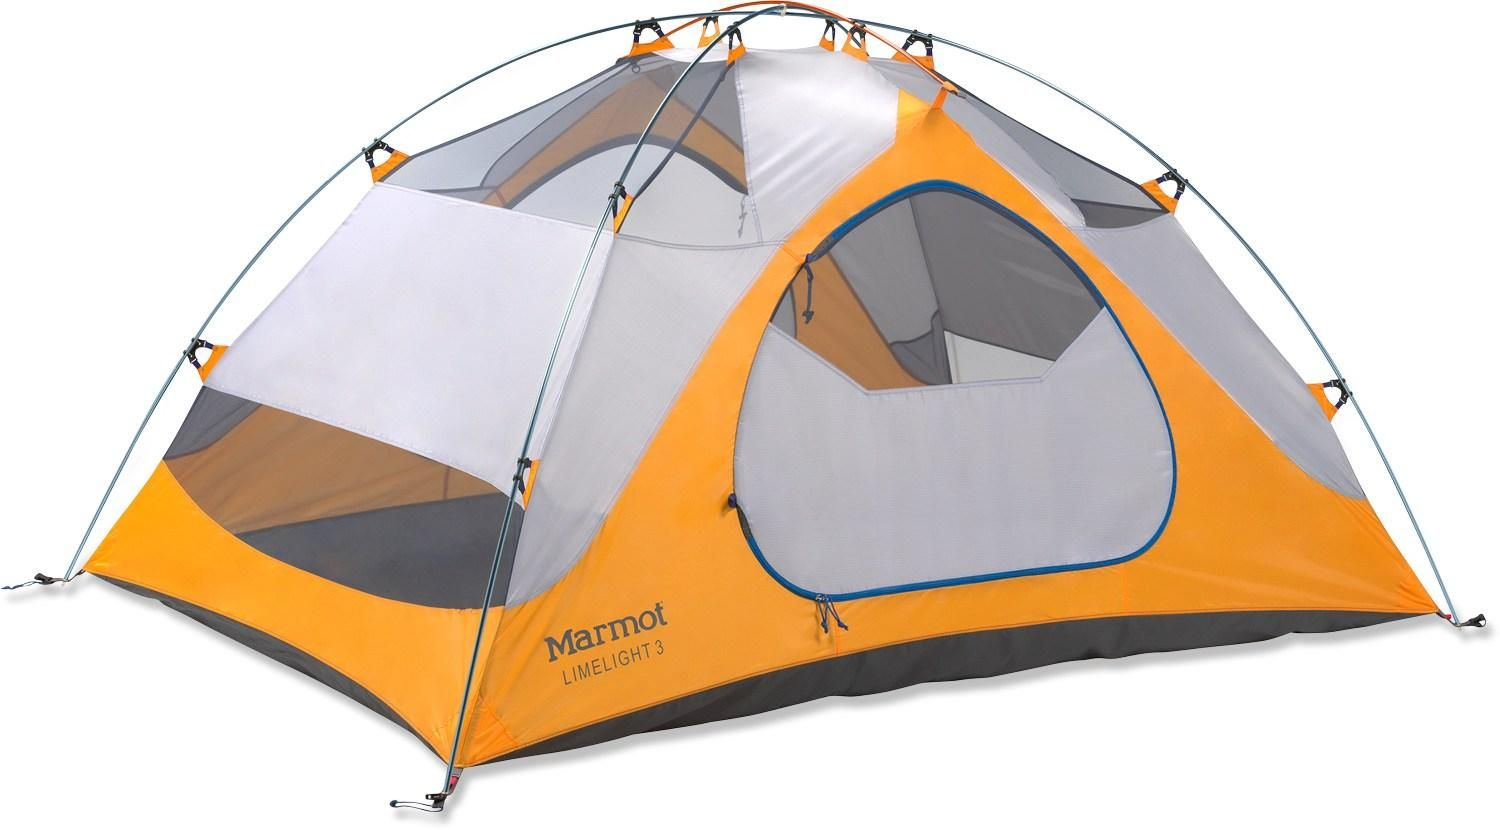 The Marmot Limelight 3P tent offers 3 backpackers a comfortable space and tough yet lightweight construction. Limelight also offers great value as it comes complete with footprint and gear loft!